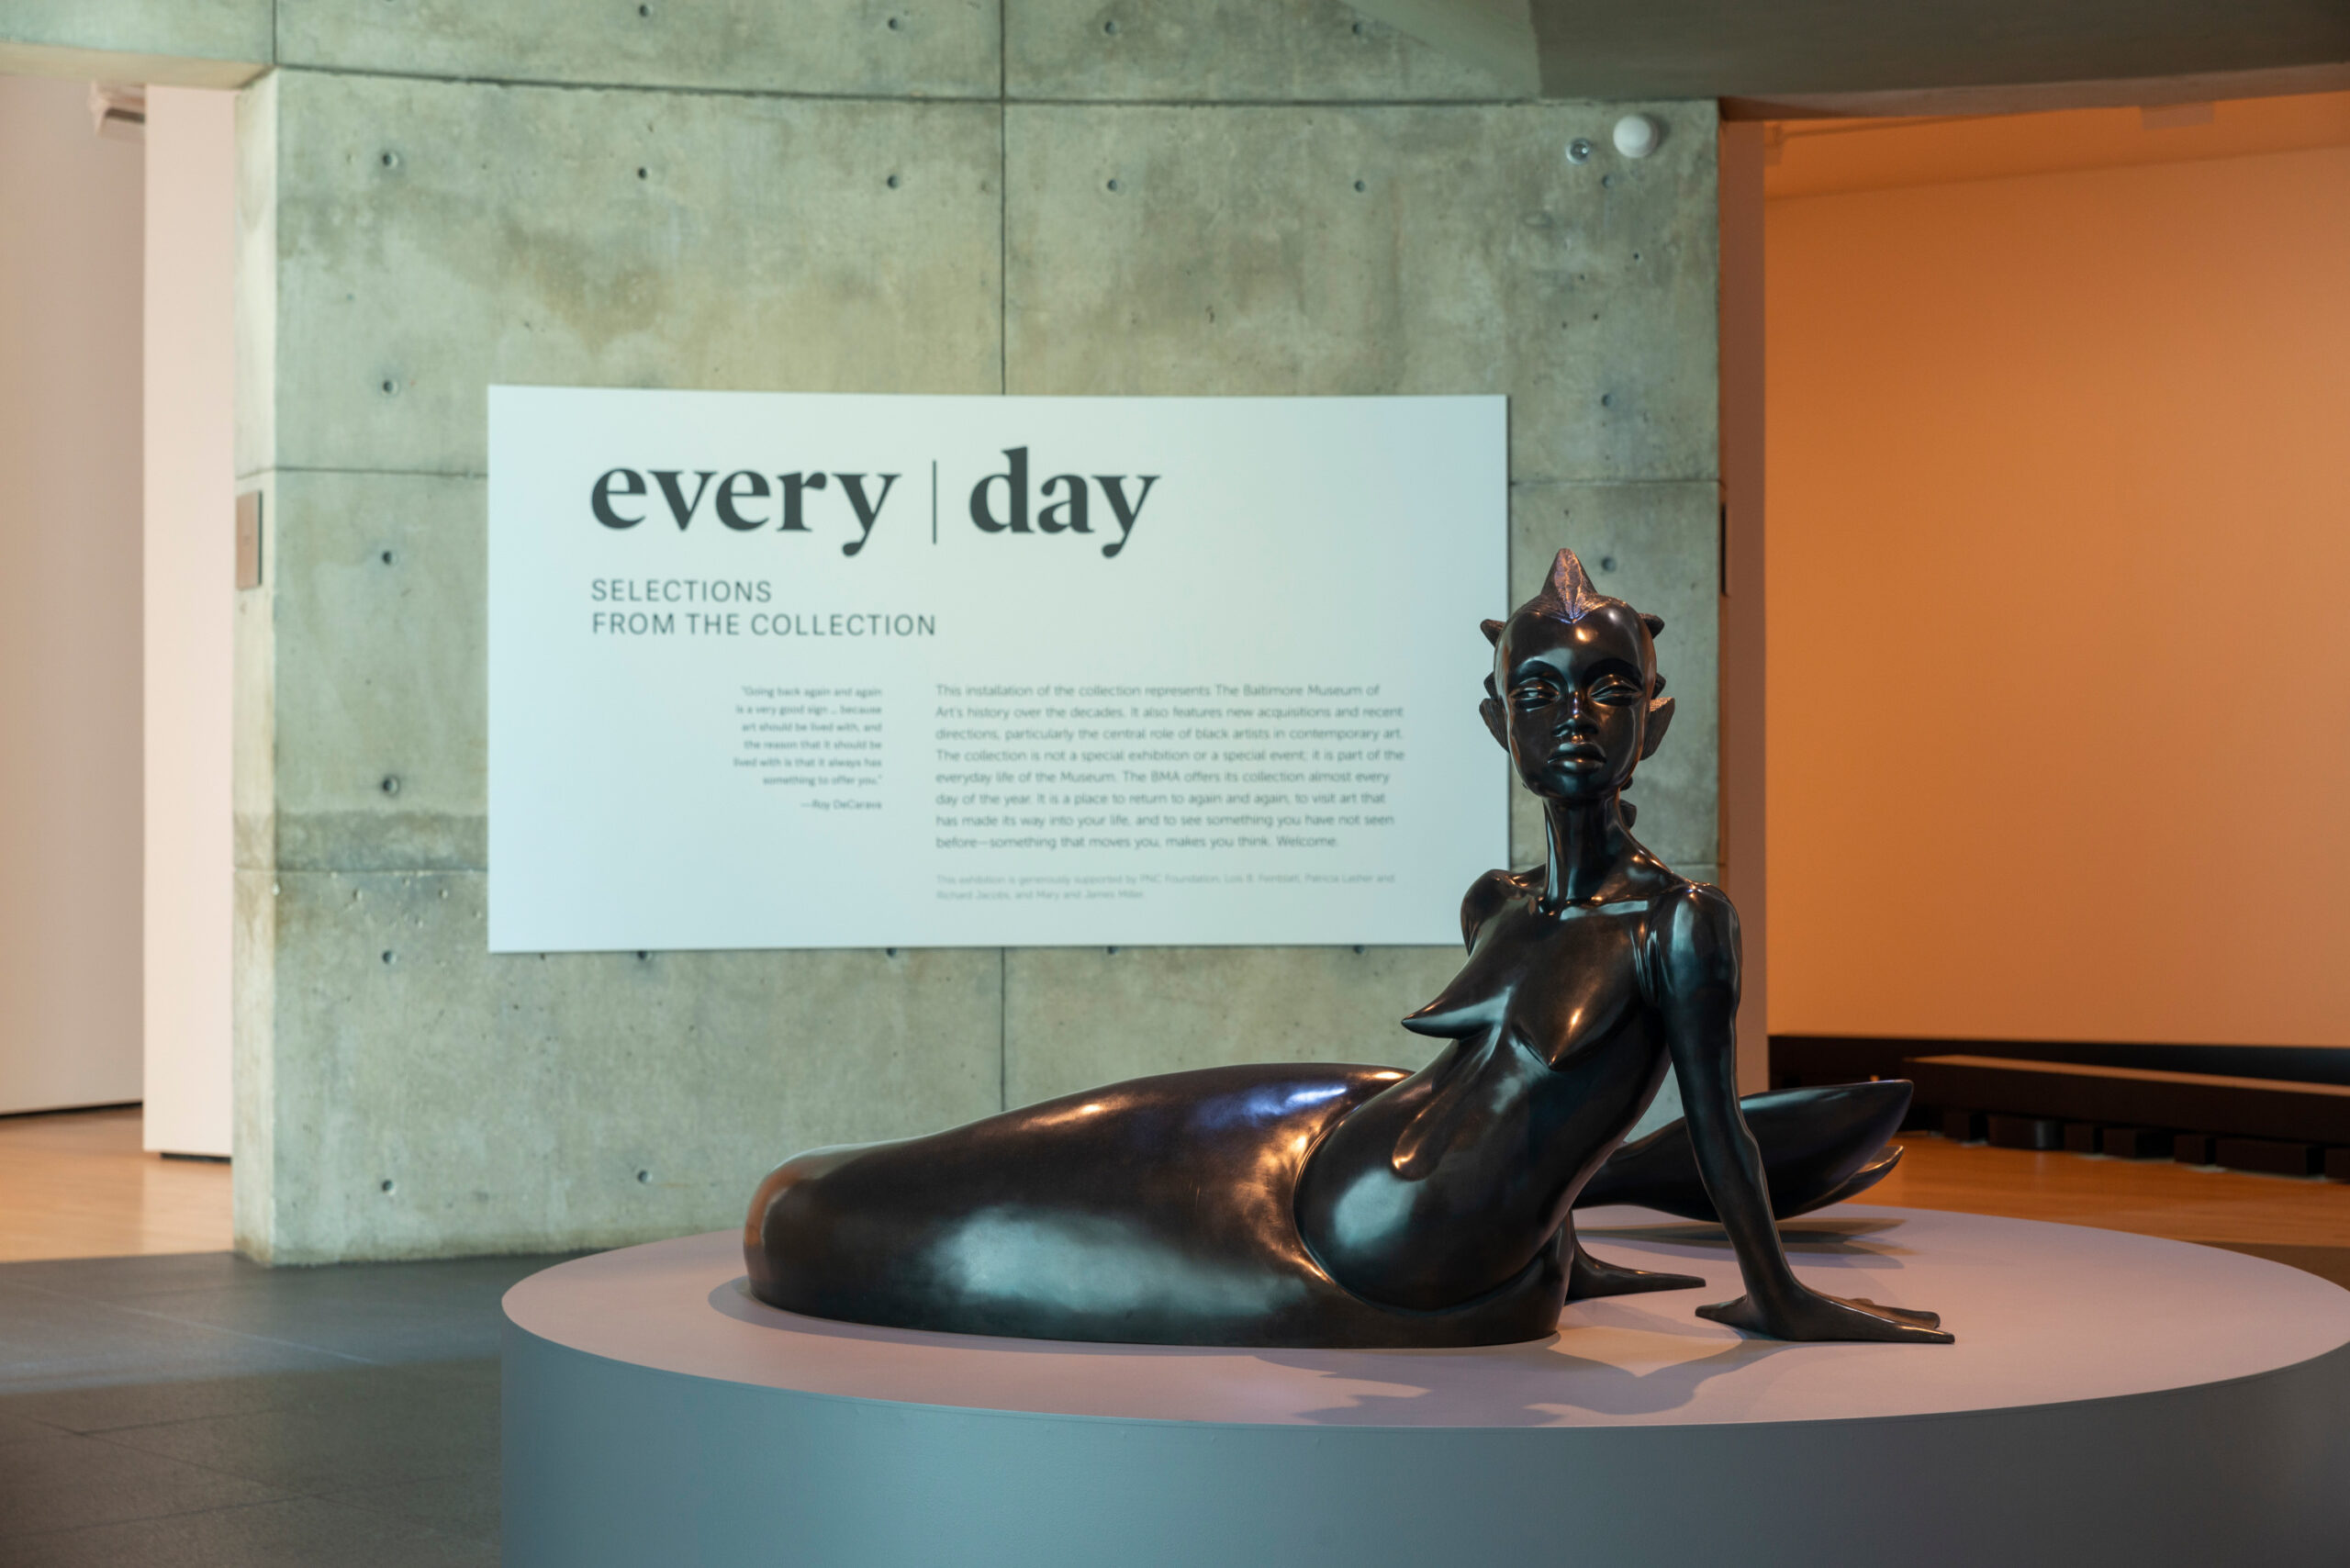 Every Day: Selections from the Collection at the Baltimore Museum of Art, July 2019. Photo by Mitro Hood.